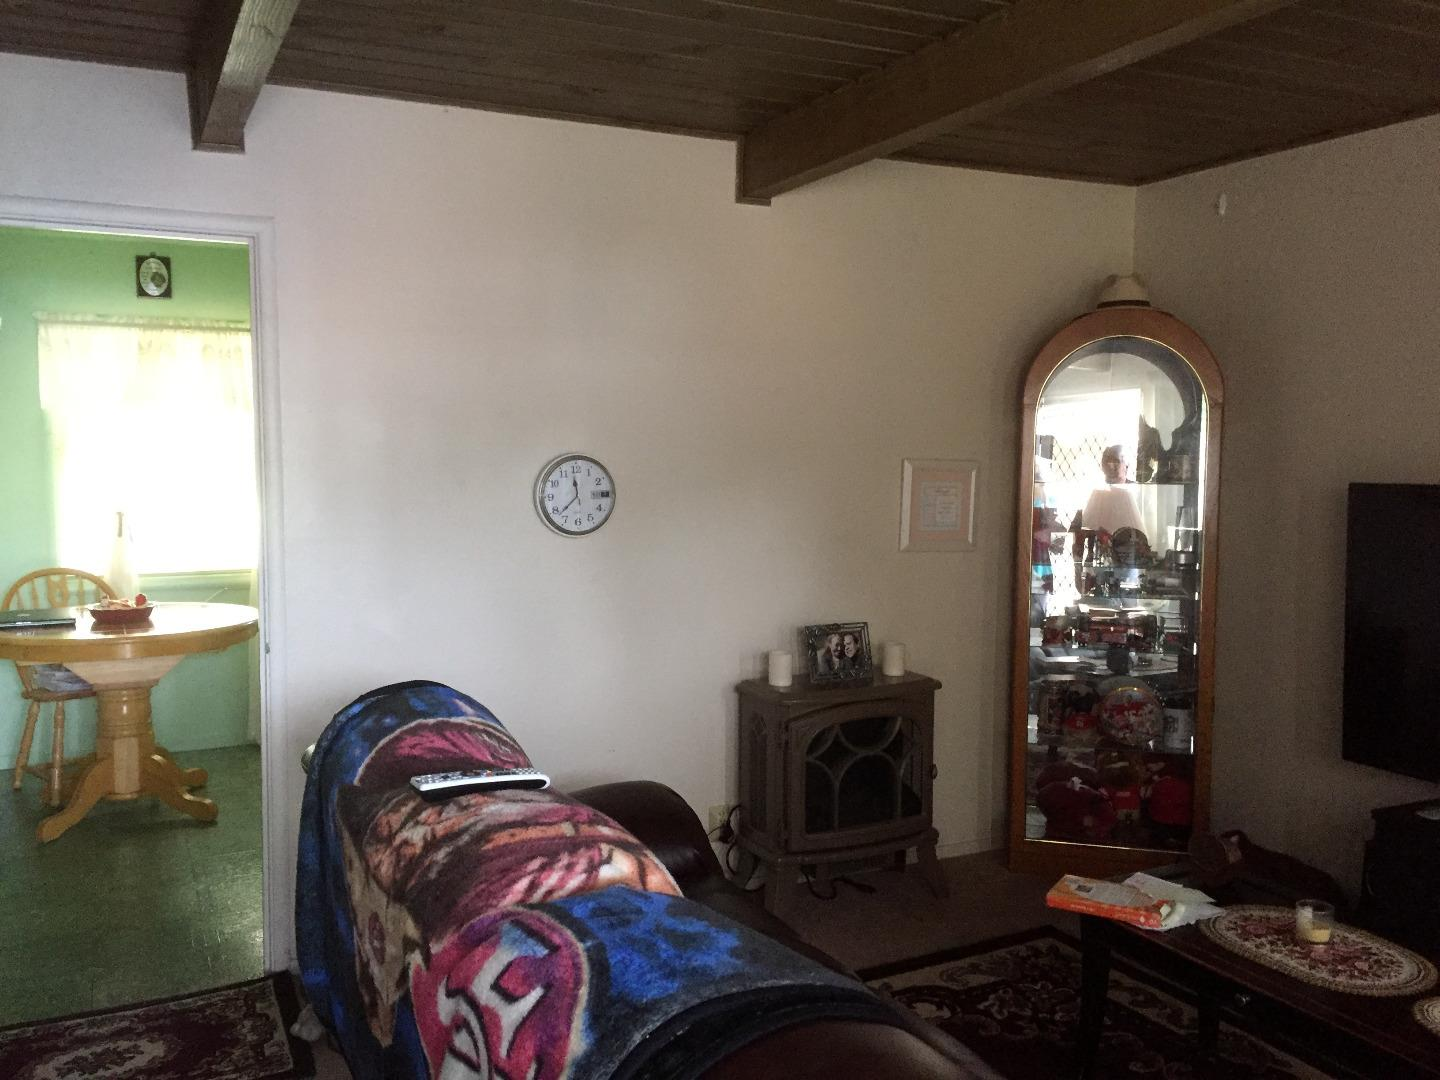 Additional photo for property listing at 1649 Nobili Avenue  Santa Clara, Kalifornien 95051 Vereinigte Staaten